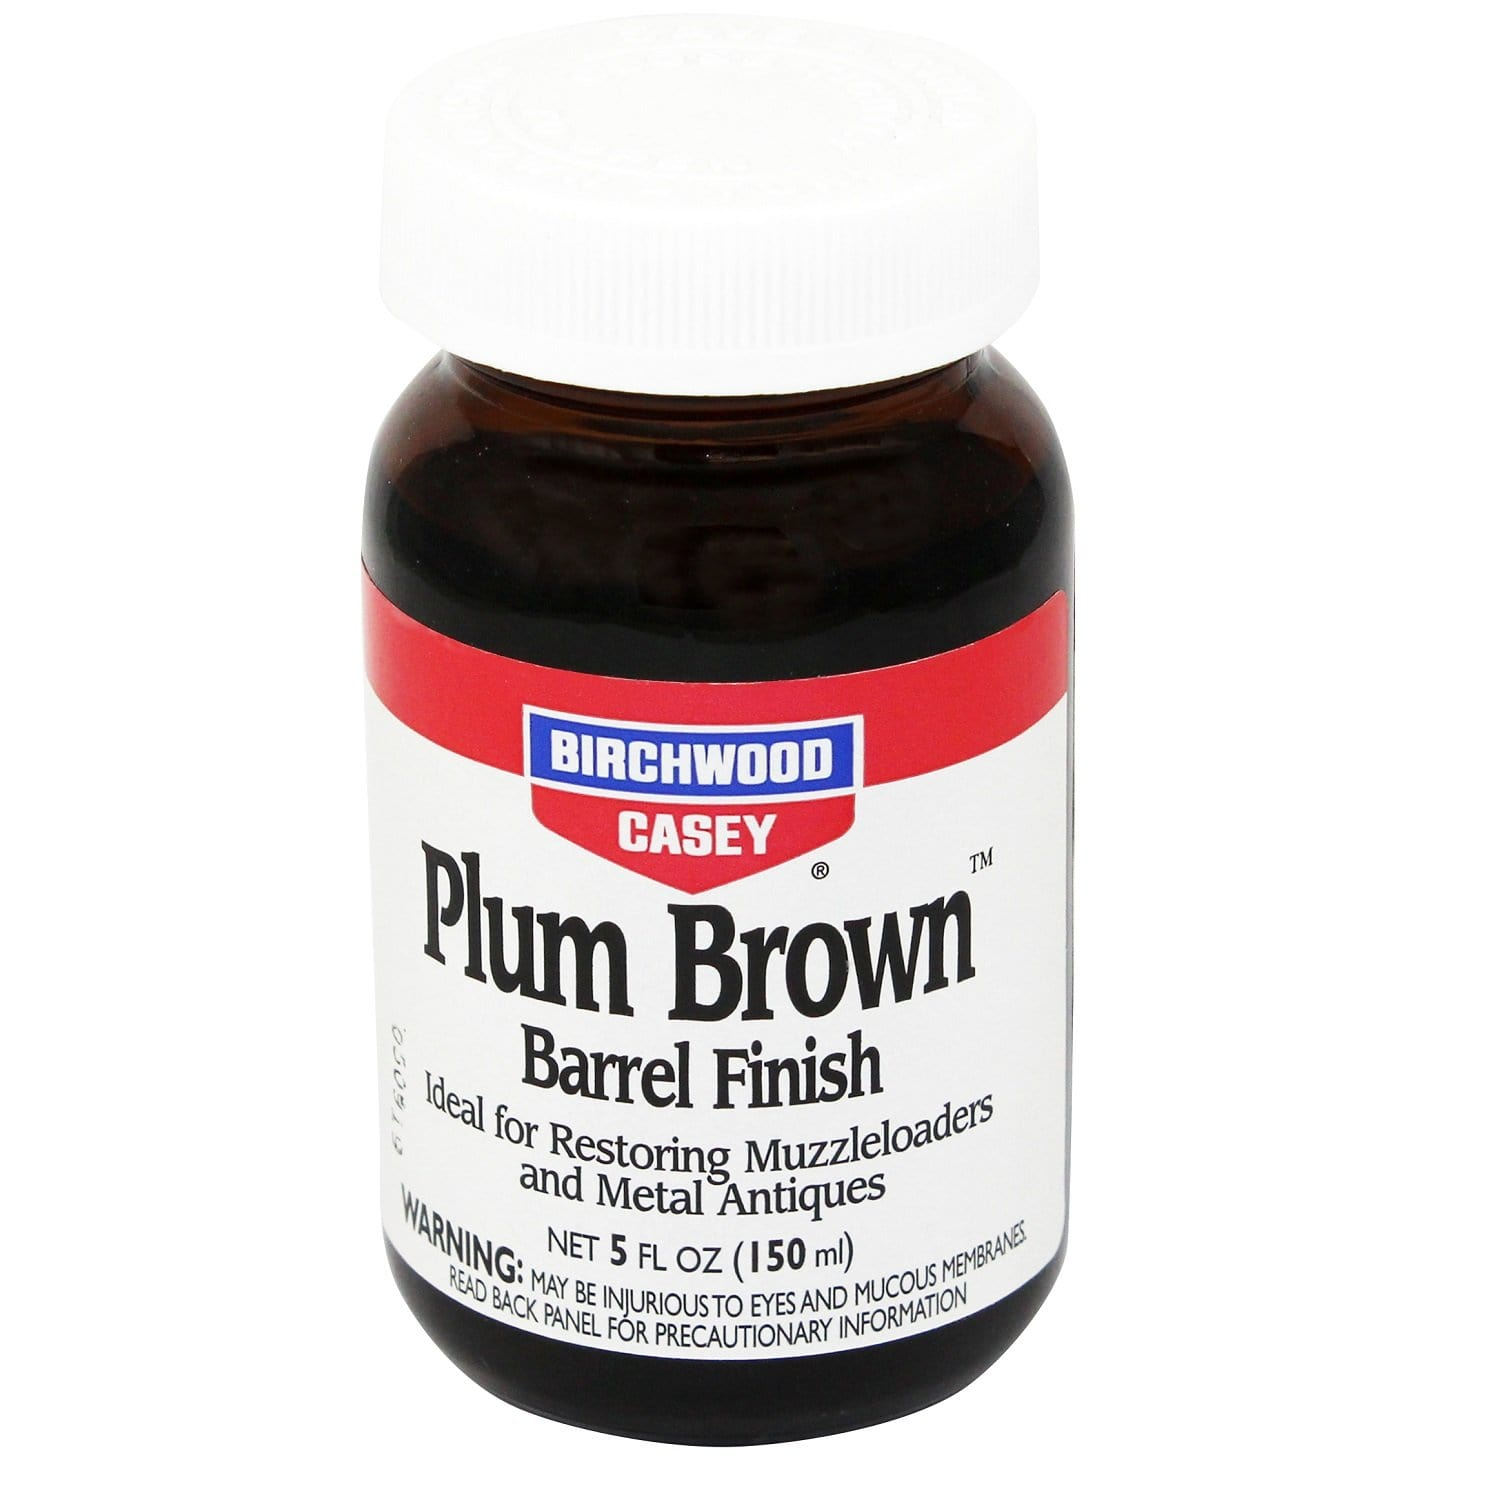 Birchwood Casey Plum Brown Barrel Finish 5 Ounce Jar